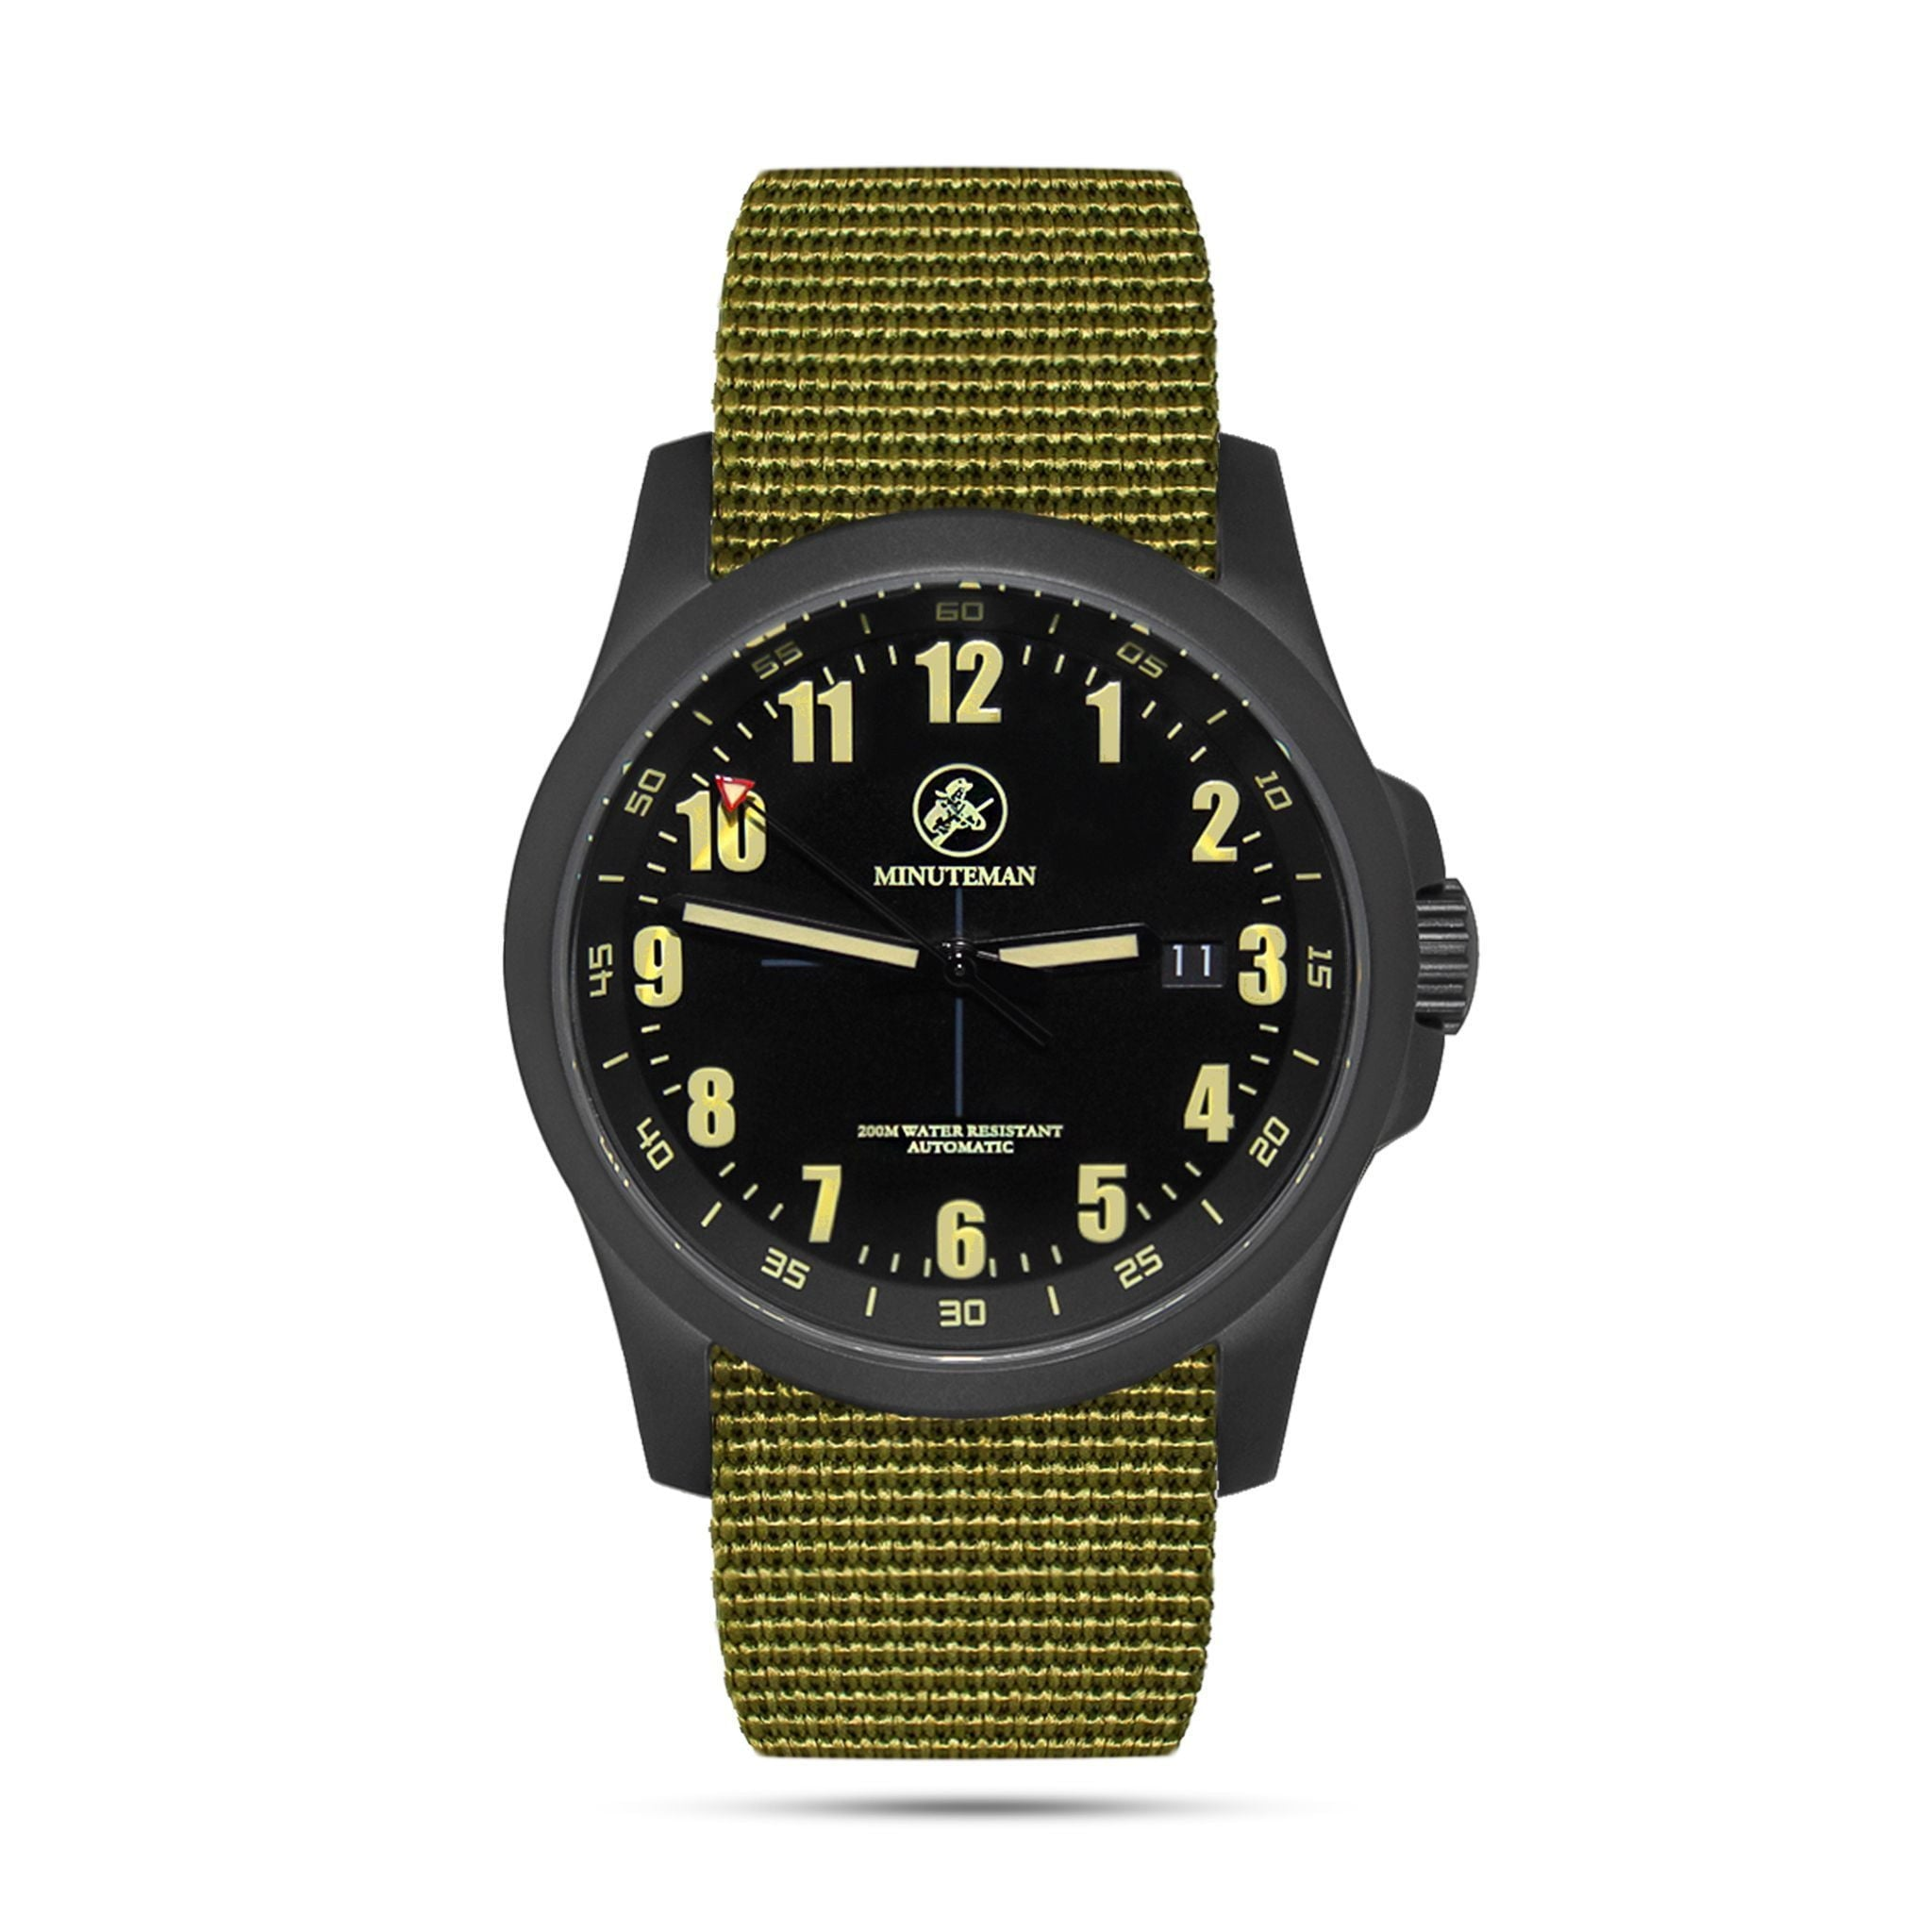 Minuteman Alpha DLC USA assembled wristwatch,minutemanwatches,Minuteman,Wrist Watch